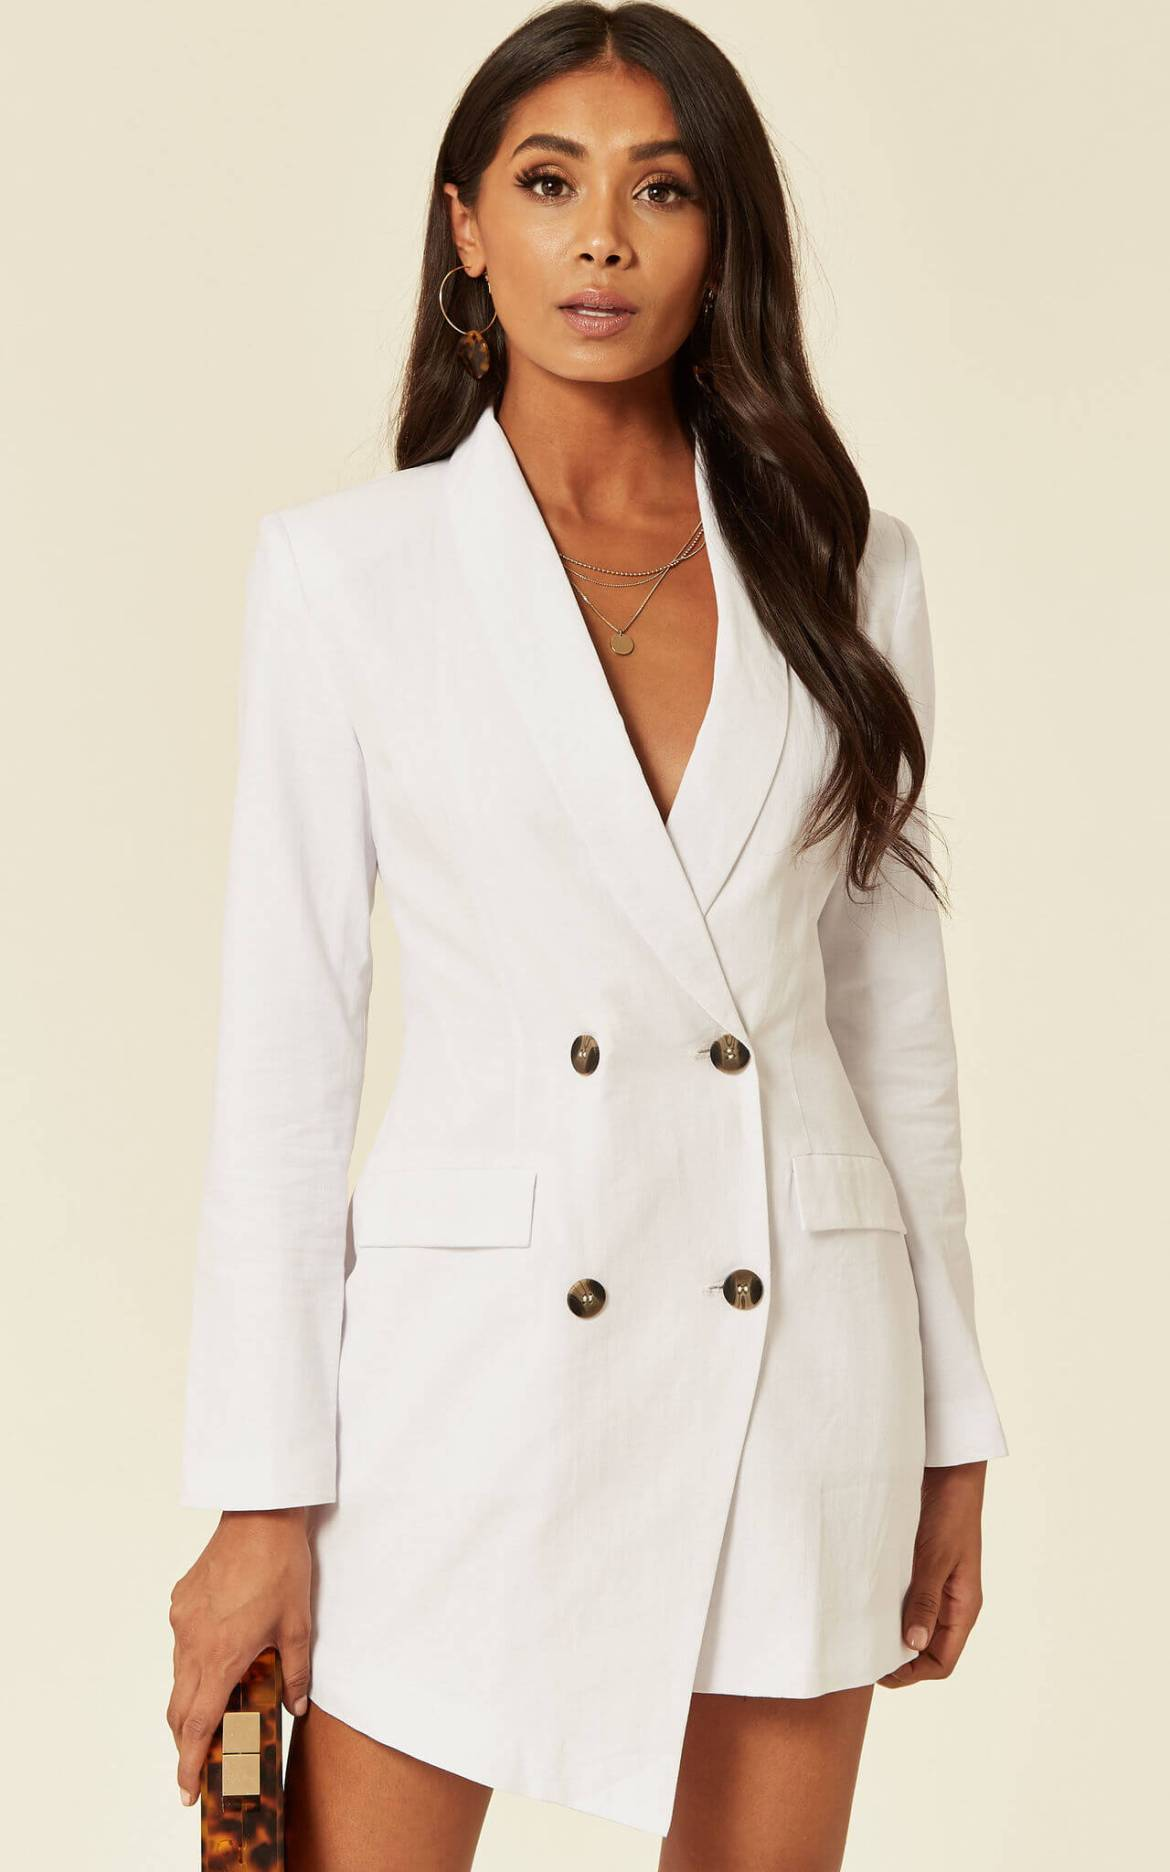 Model wears double breasted white cotton blazer dress in white